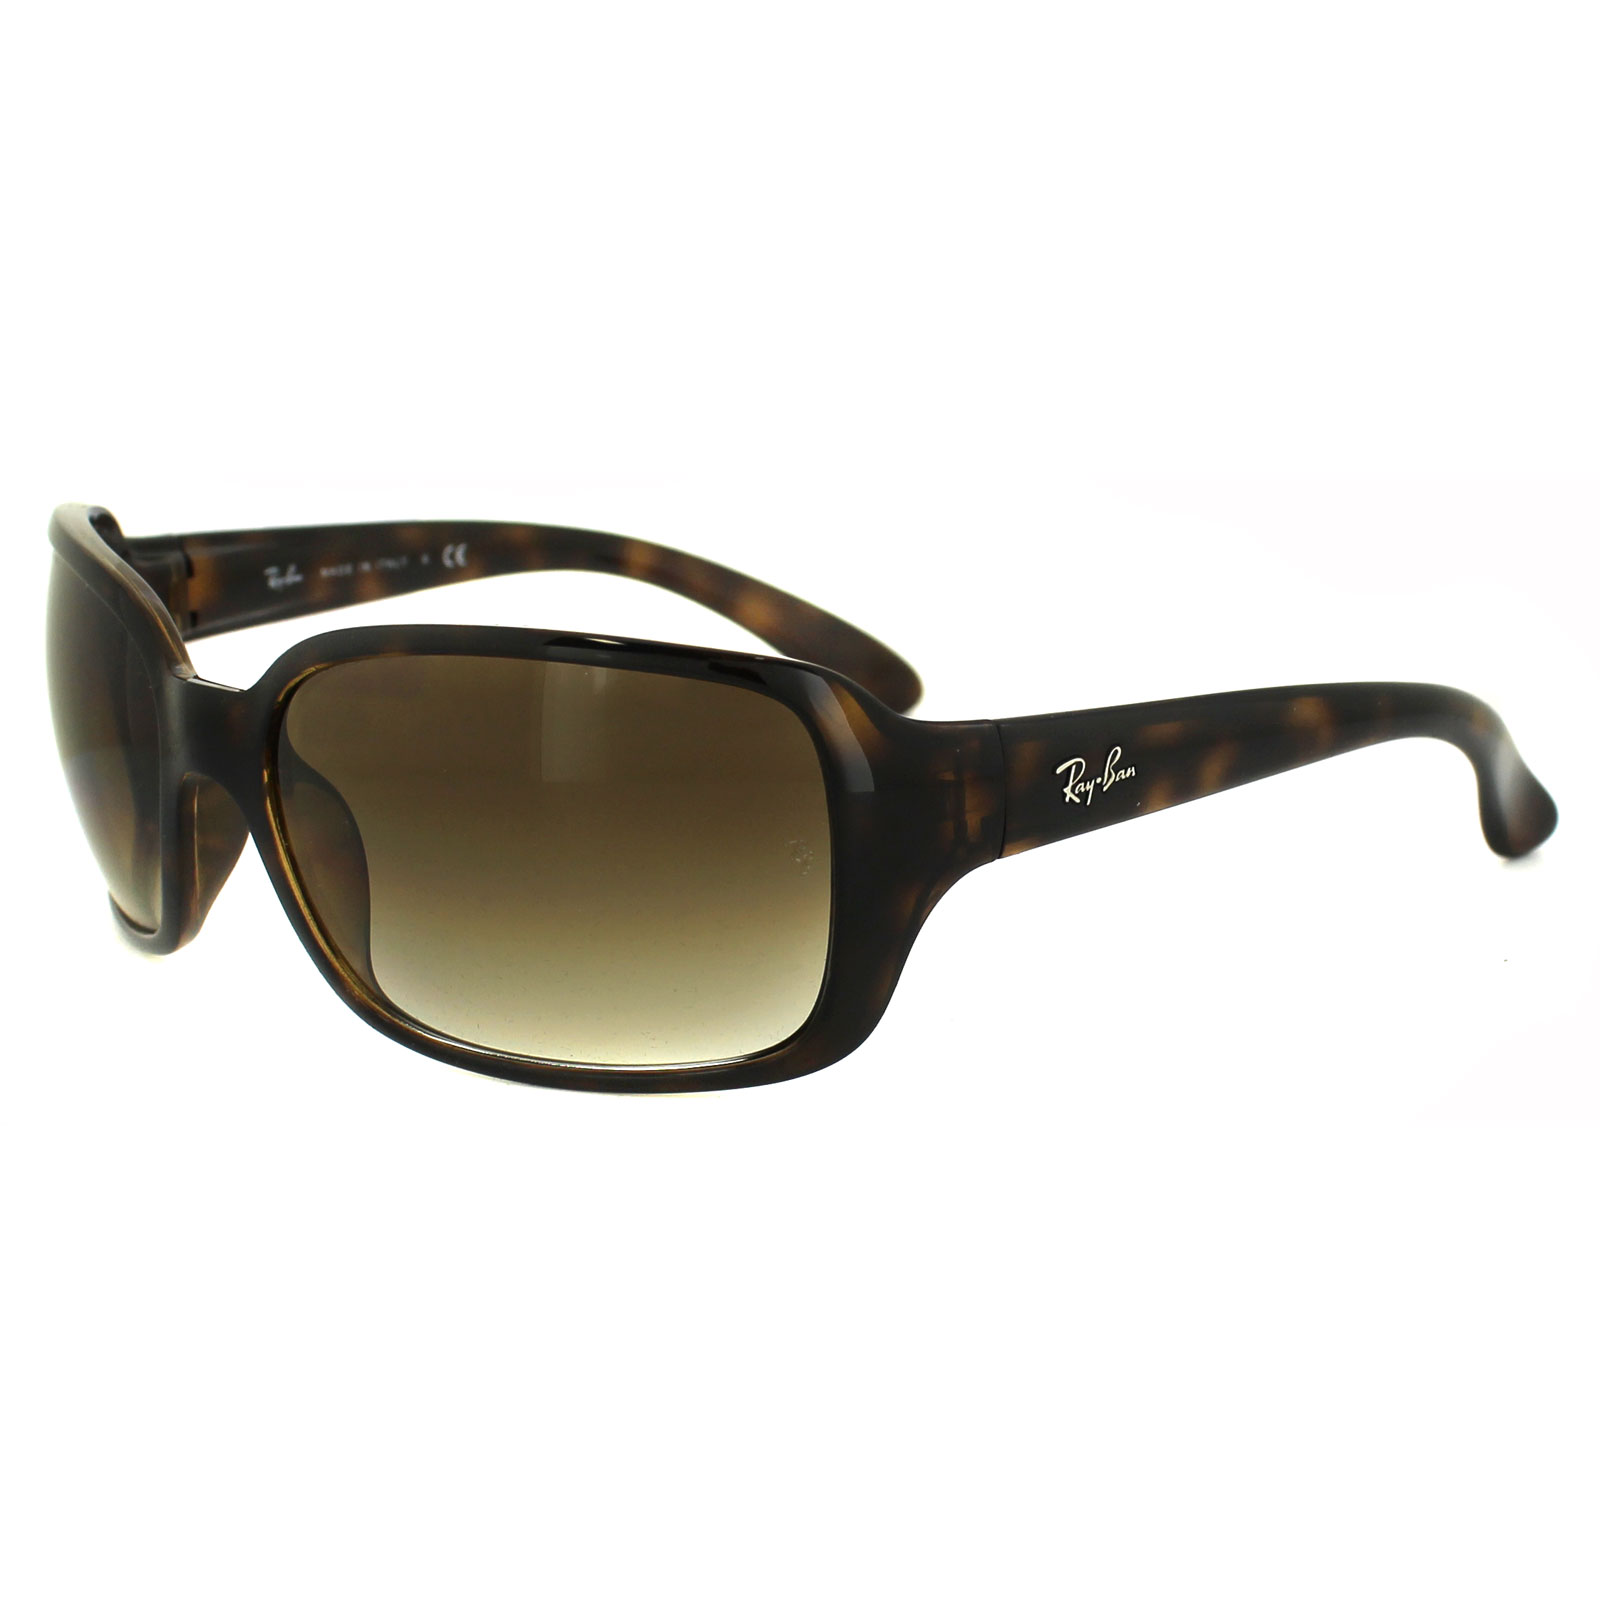 5e0affac0e Ray-Ban Sunglasses 4068 710 51 Havana Brown Gradient 805289143826